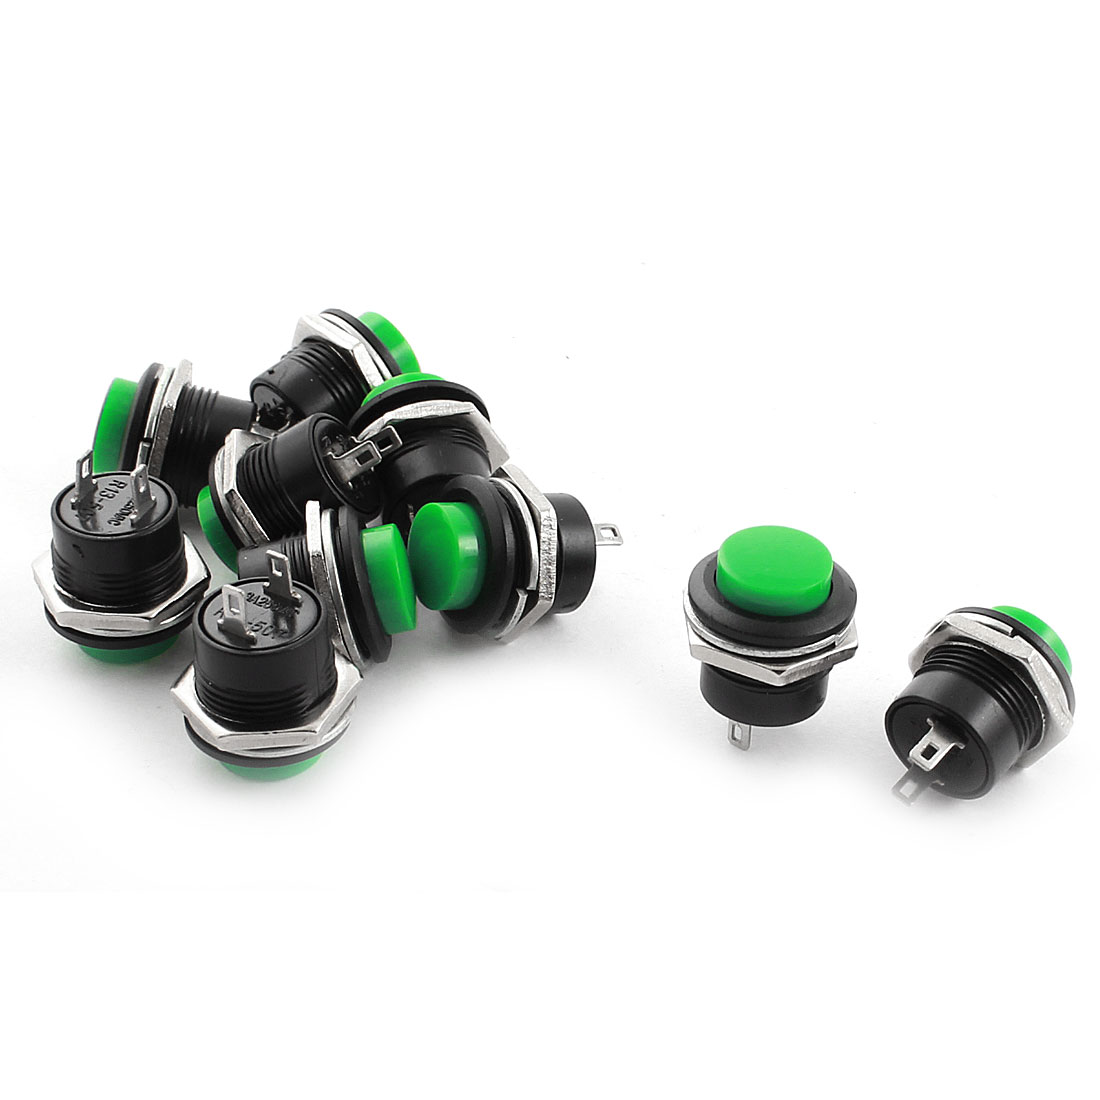 10 Pcs 16mm Thread Panel Mount SPST Solder Momentary Action Green Round Head Push Button Switch